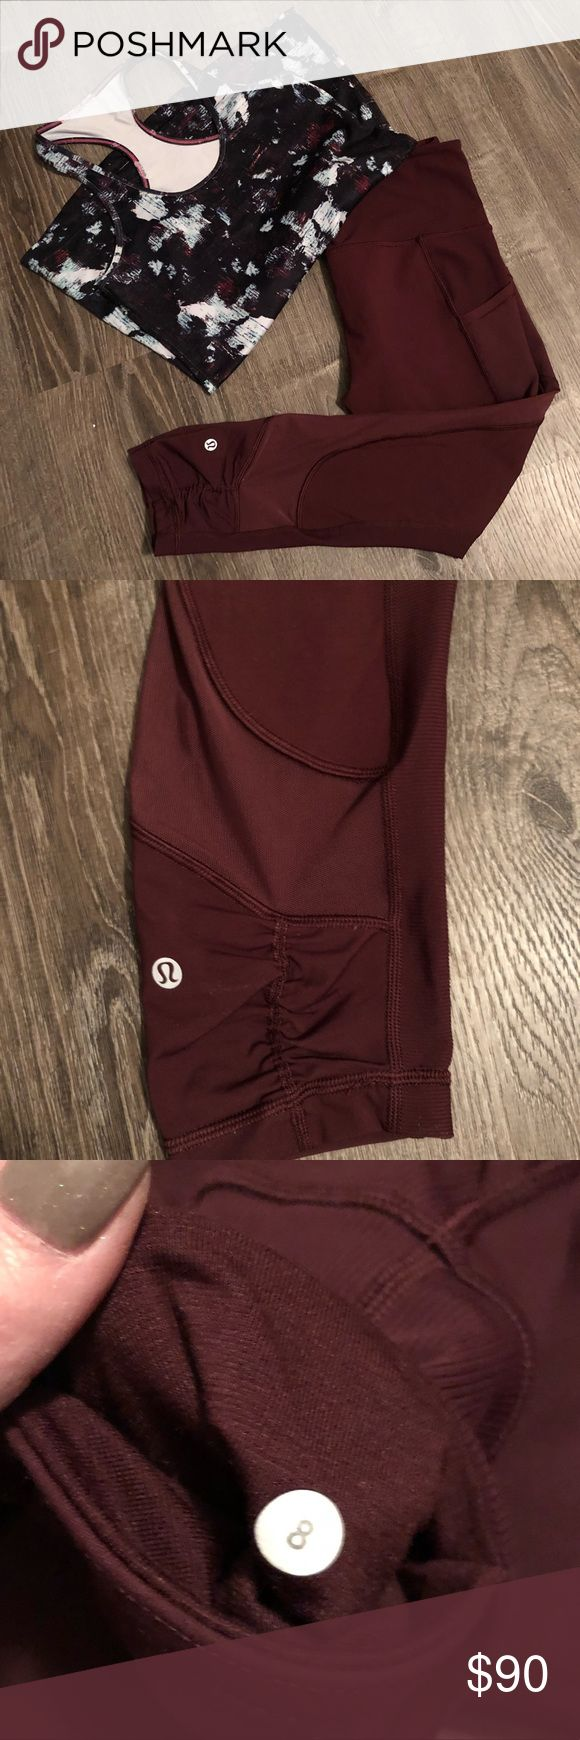 Lululemon Capris - like new! Cute details! Like new Lulus.  Only worn a couple times.  No piling as you can see in picture.  Capri length as seen in picture.  Lots of cute details on these from mesh sides, pockets, and cinching at the legs.  Size 8.  Top for sale also in another listing (not included!) lululemon athletica Pants Leggings